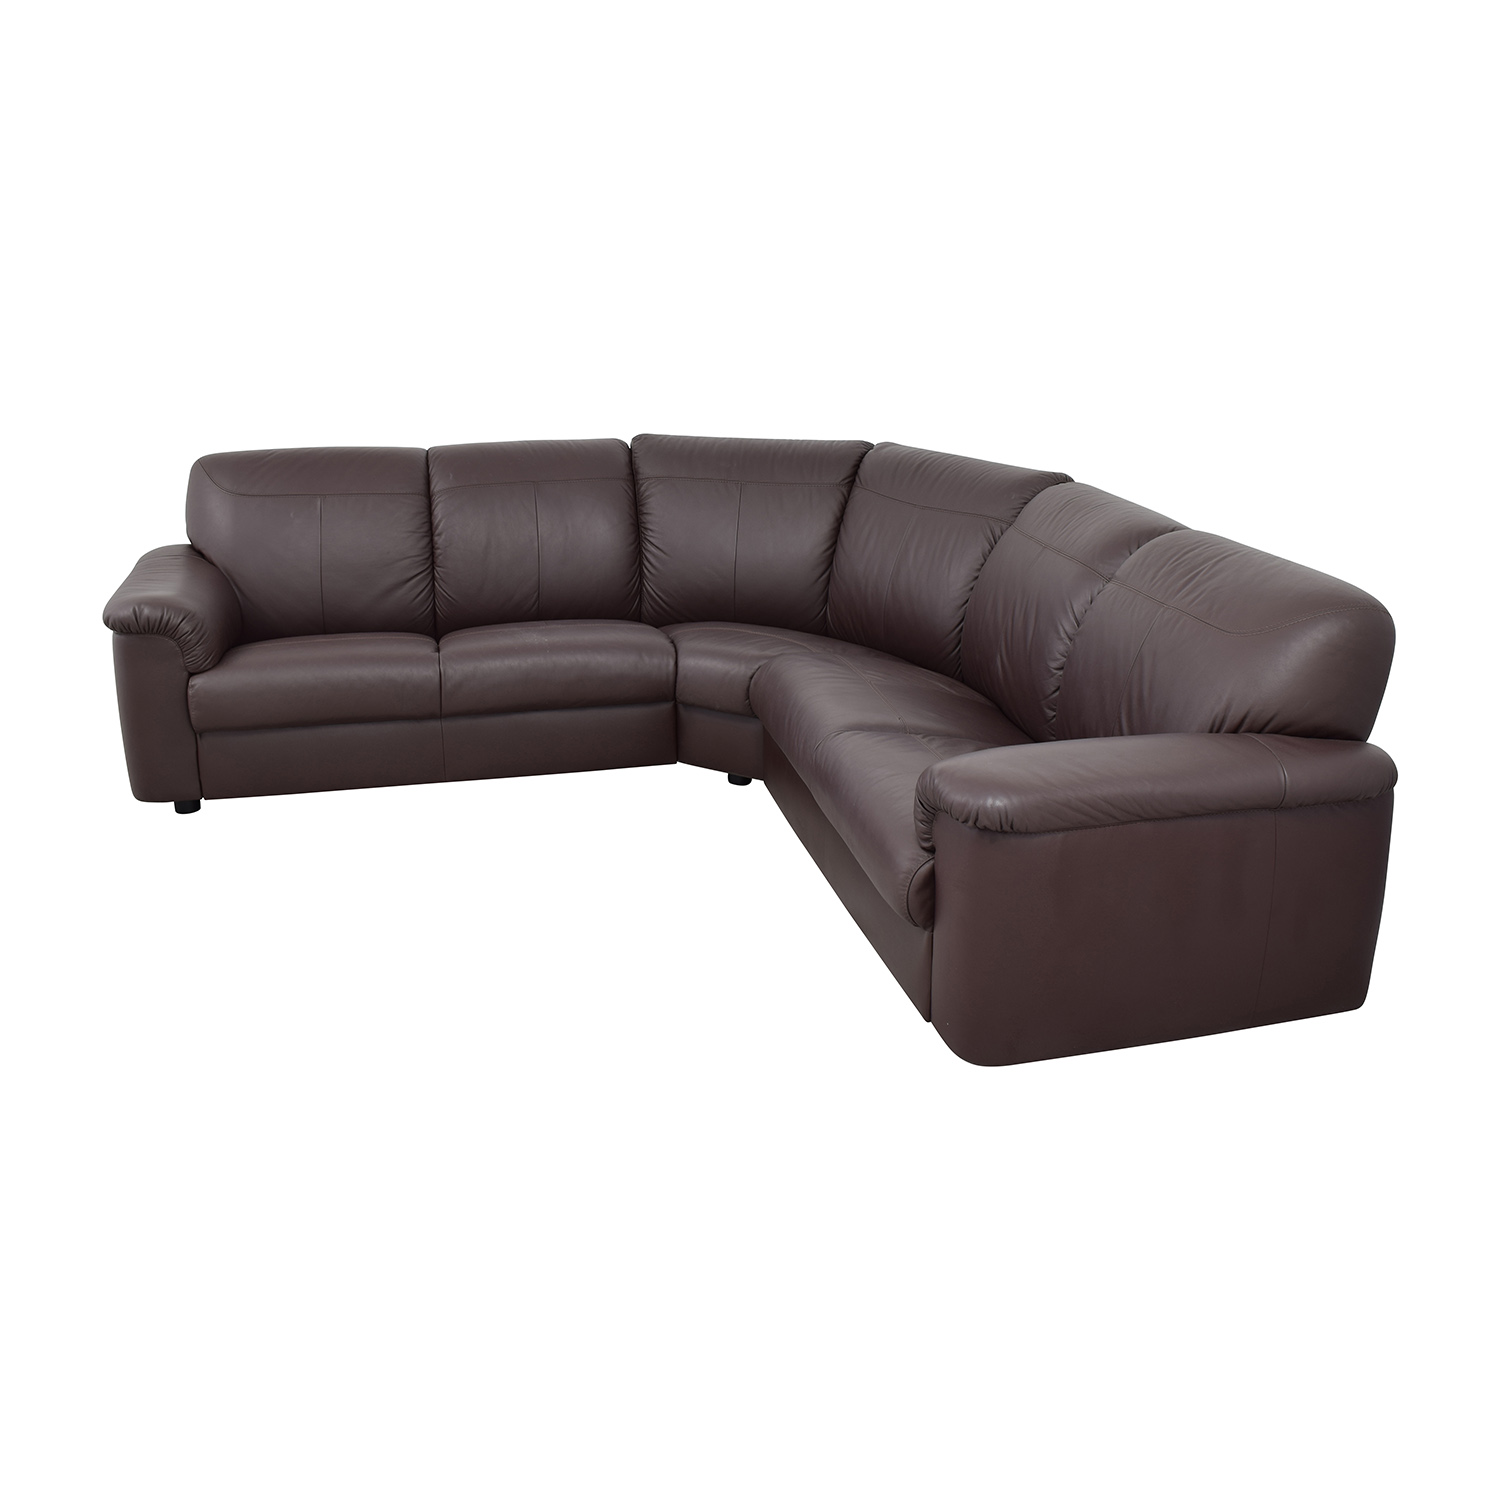 71 Off Ikea Ikea Plush Brown Leather Sectional Sofas